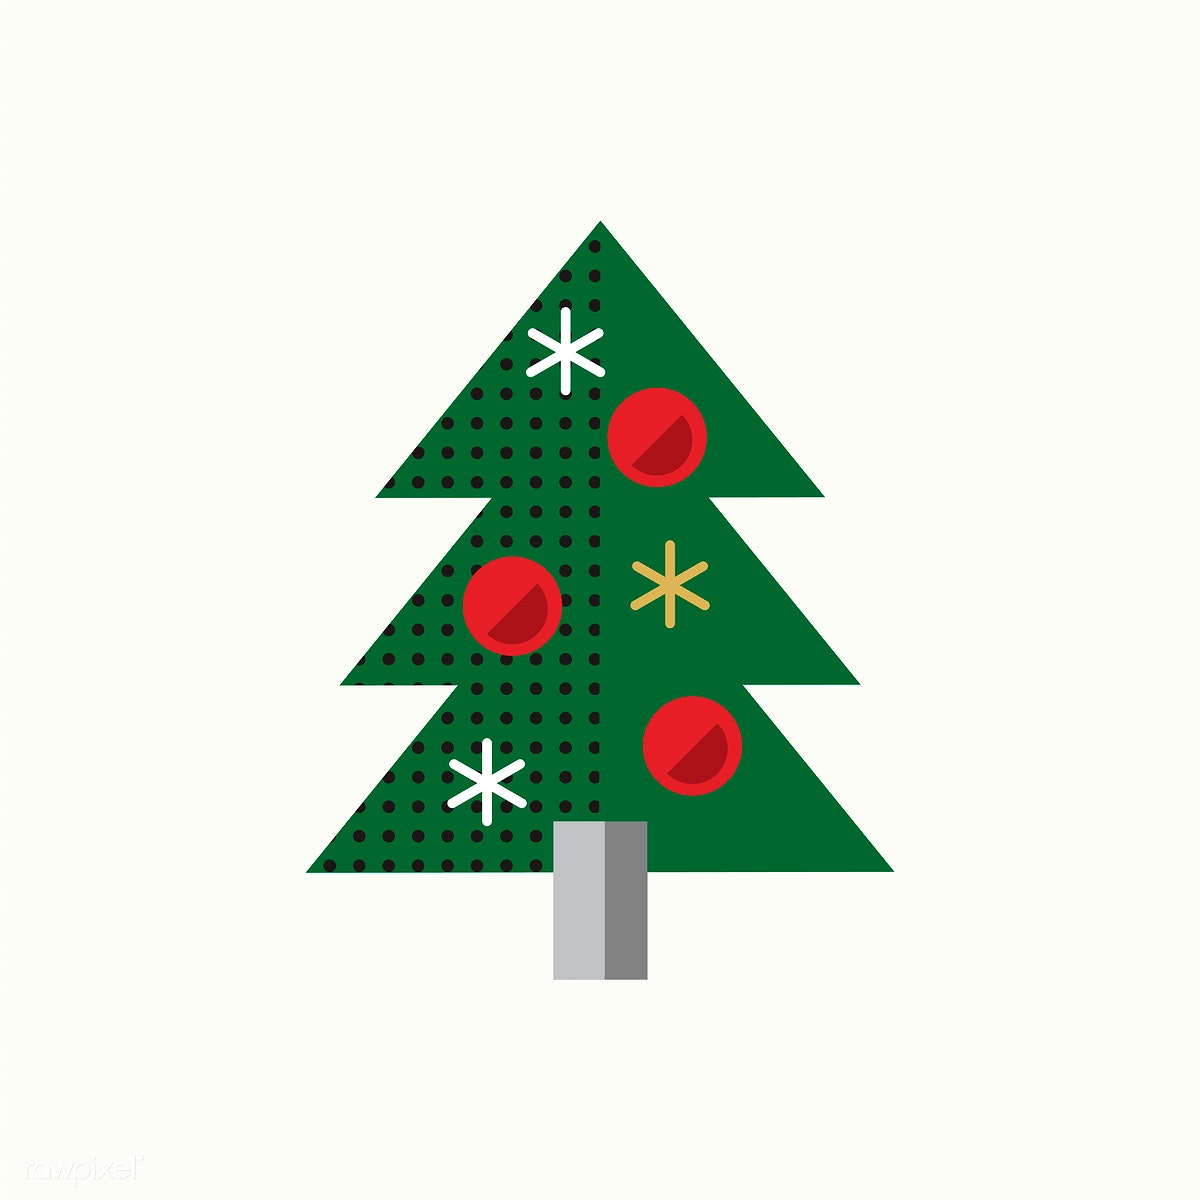 Christmas Tree Icon.Christmas Tree Icon Vector Free Stock Illustration 280825